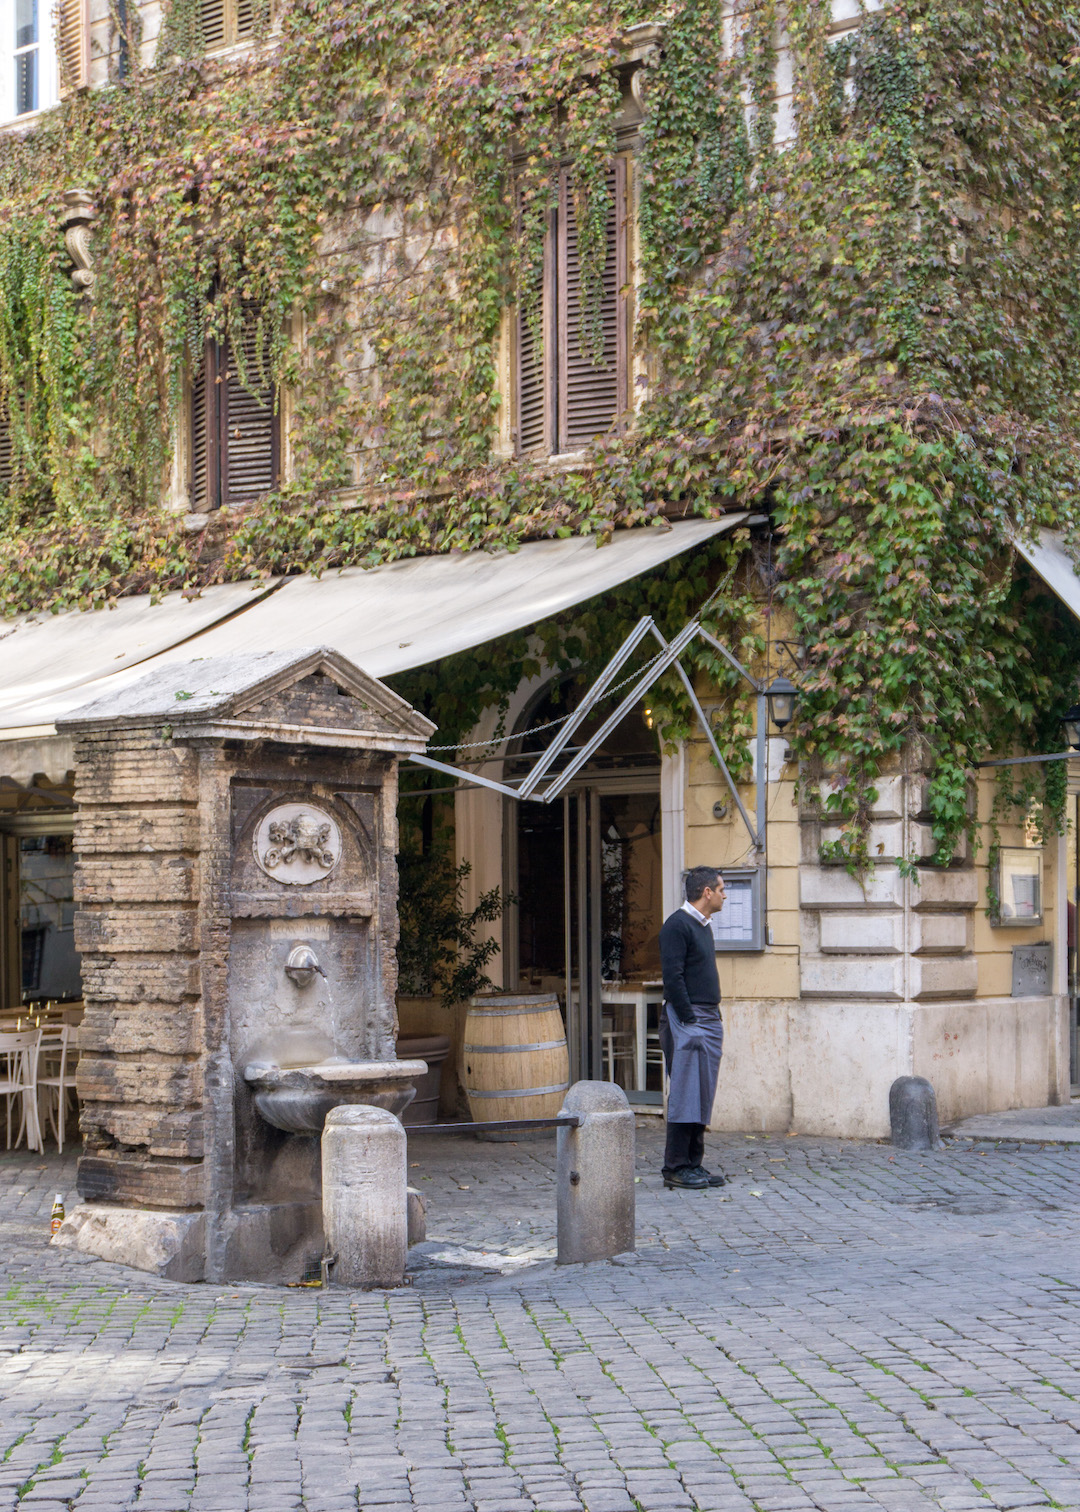 Her_Travel_Edit_Rome_Water_Fountain